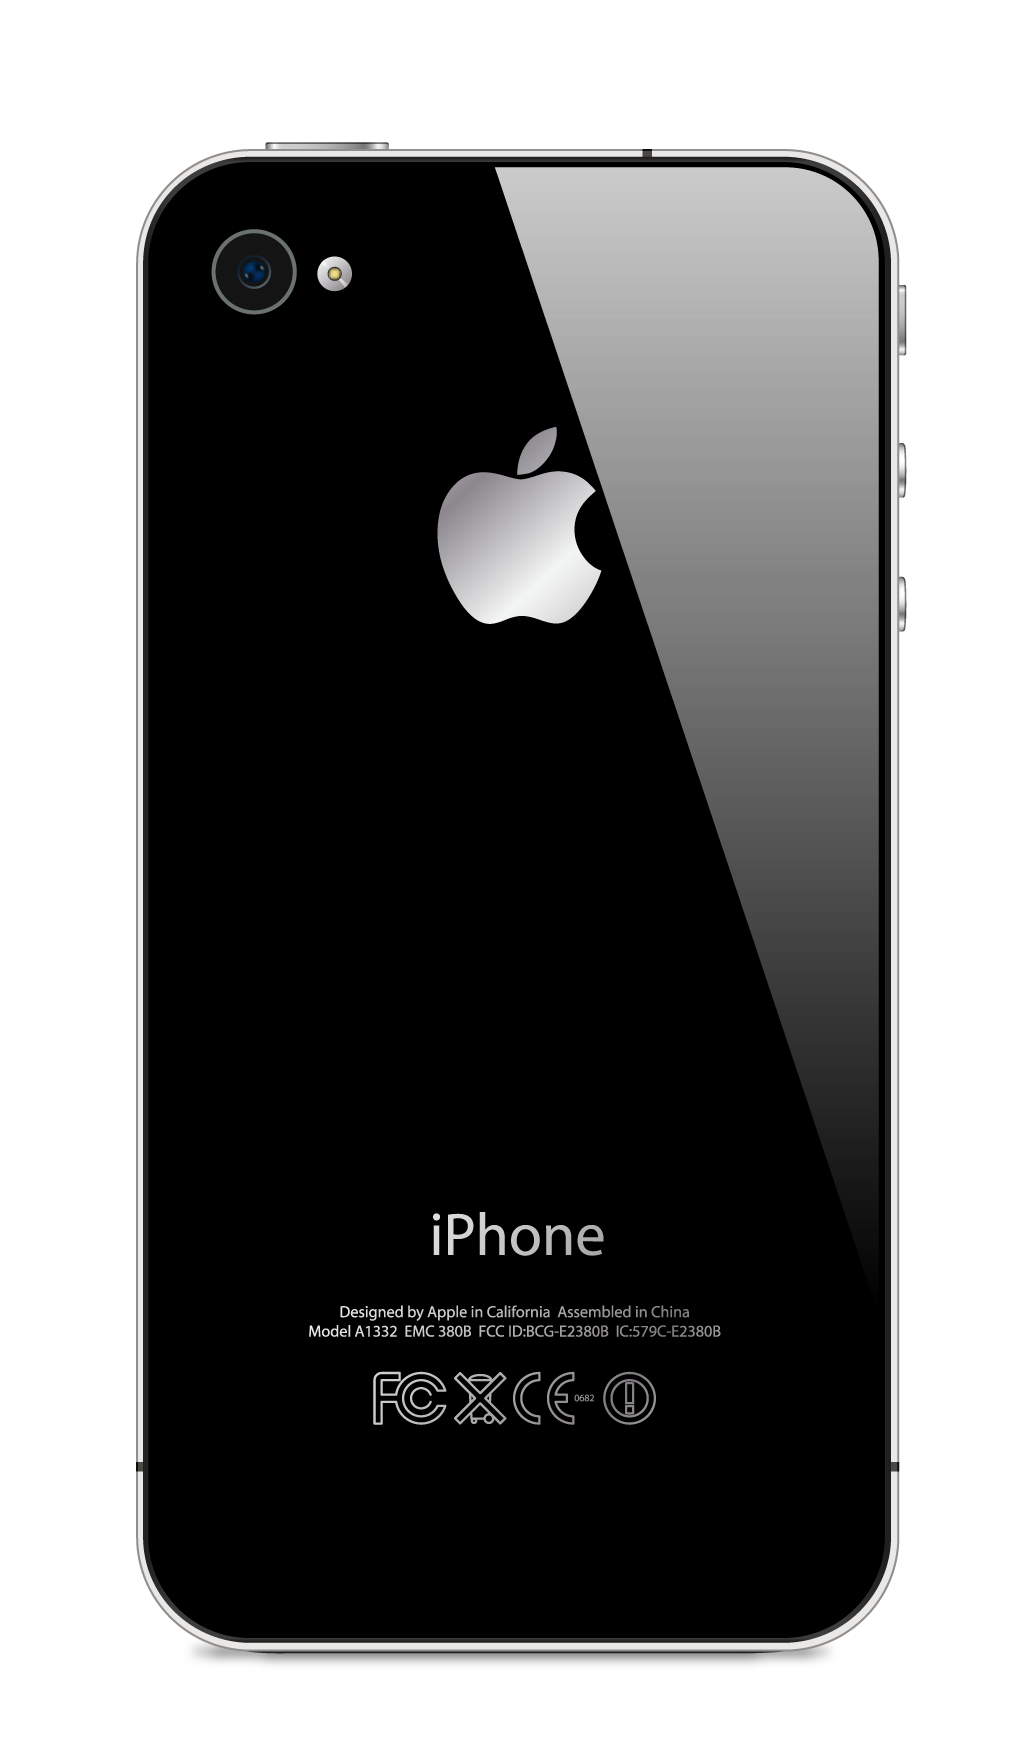 Apple Iphone Back View PNG Picture 19998